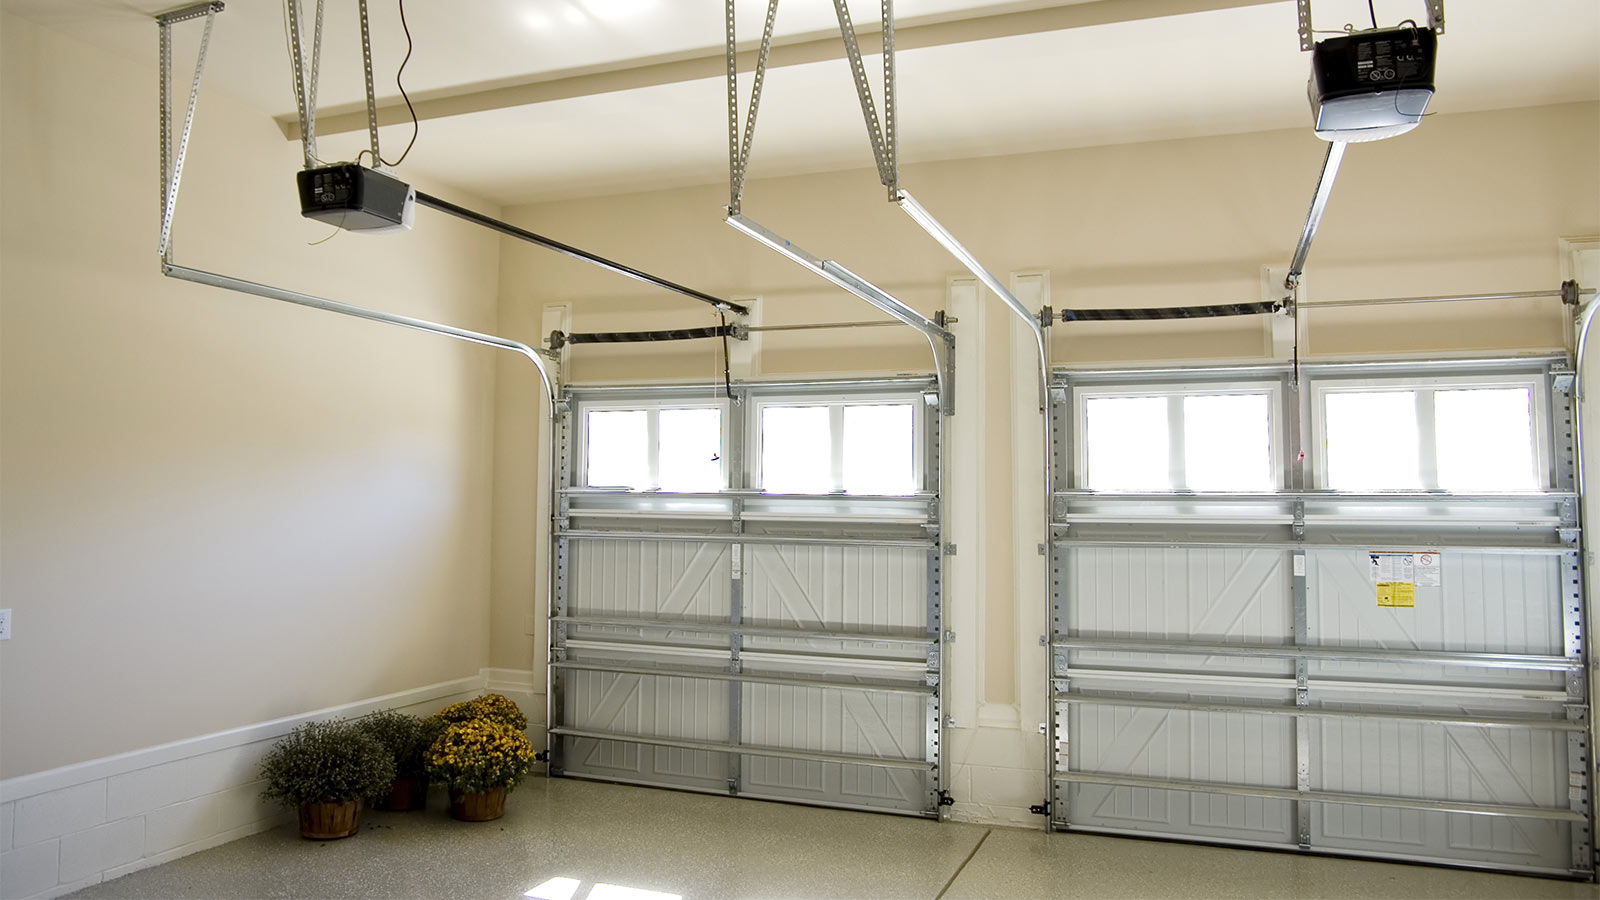 Sectional Garage Doors from High Speed Roller Shutters Grays suppliers.